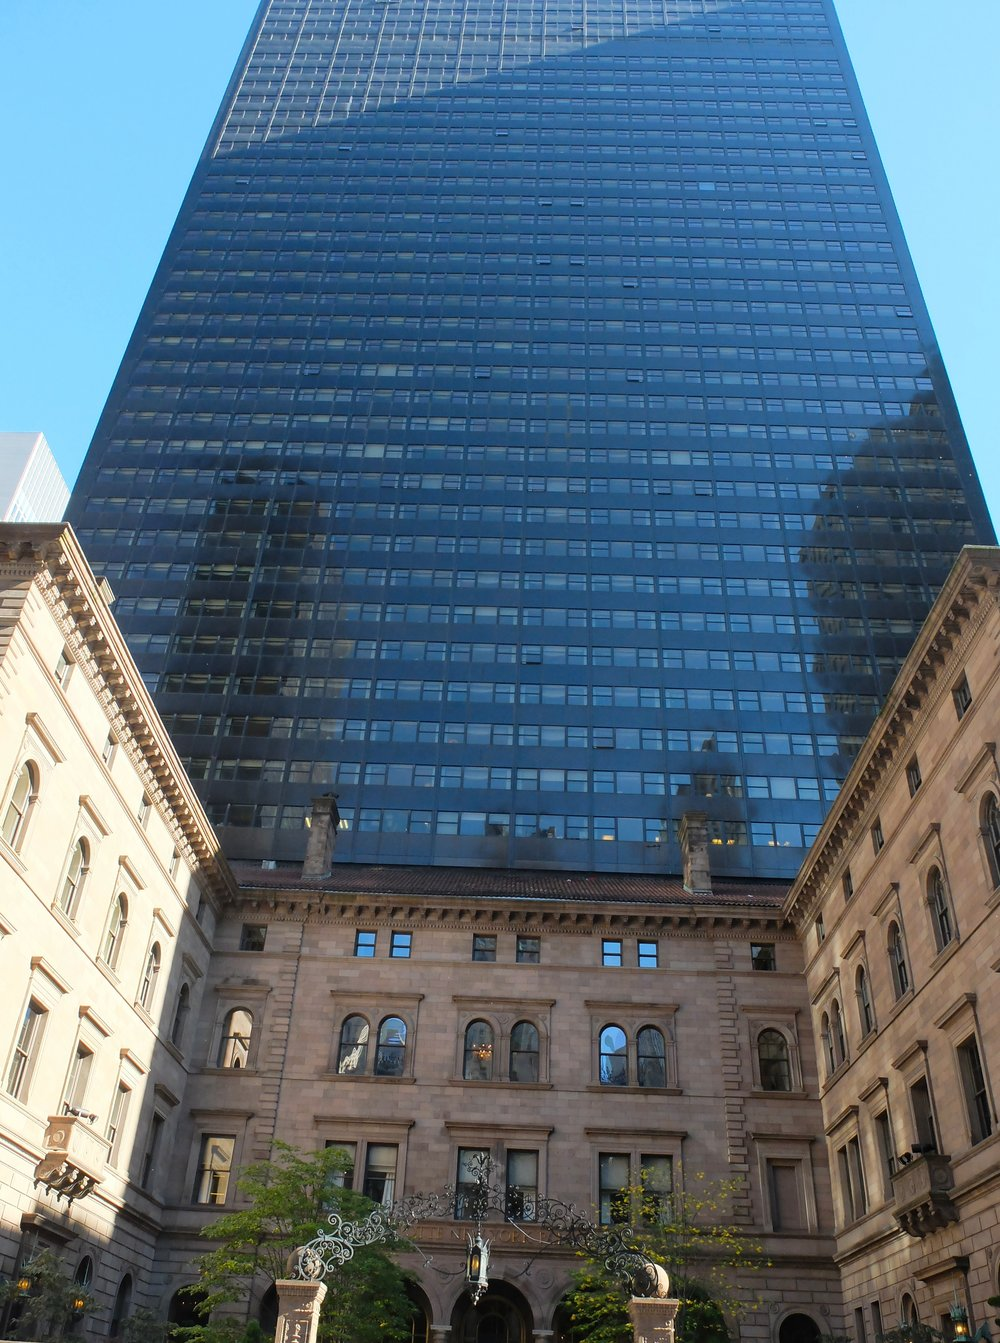 Harry Hemsley had the 55 story tower built in 1974.  The courtyard is a lovely place for a martini.